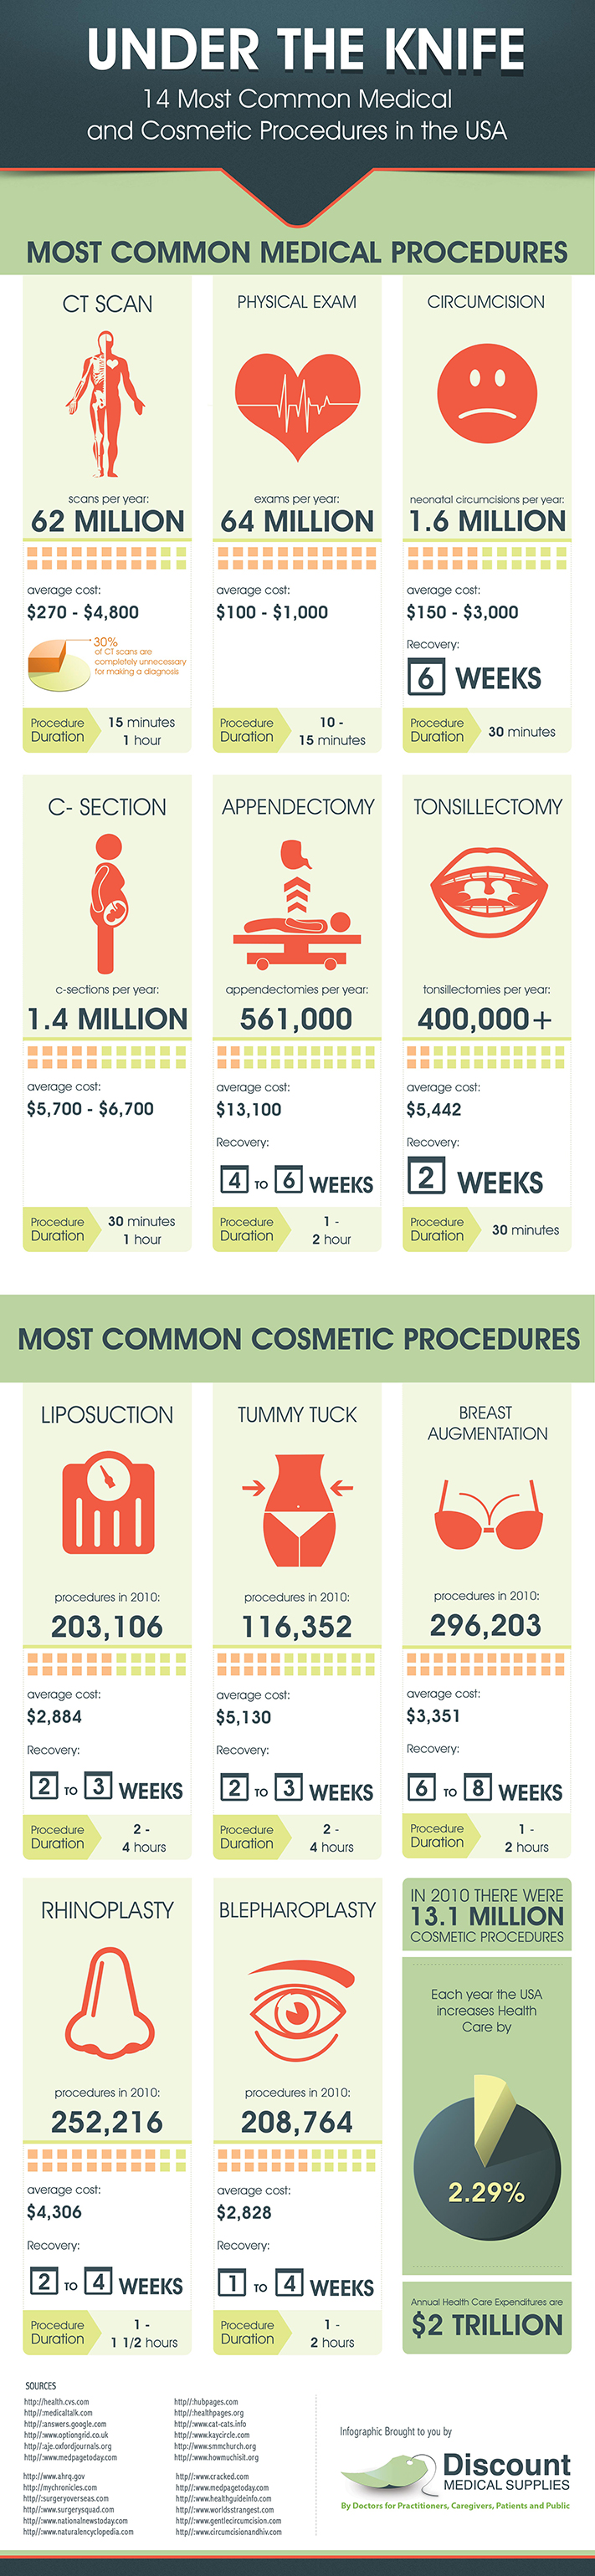 Most Common Medical and Cosmetic Procedures in the US